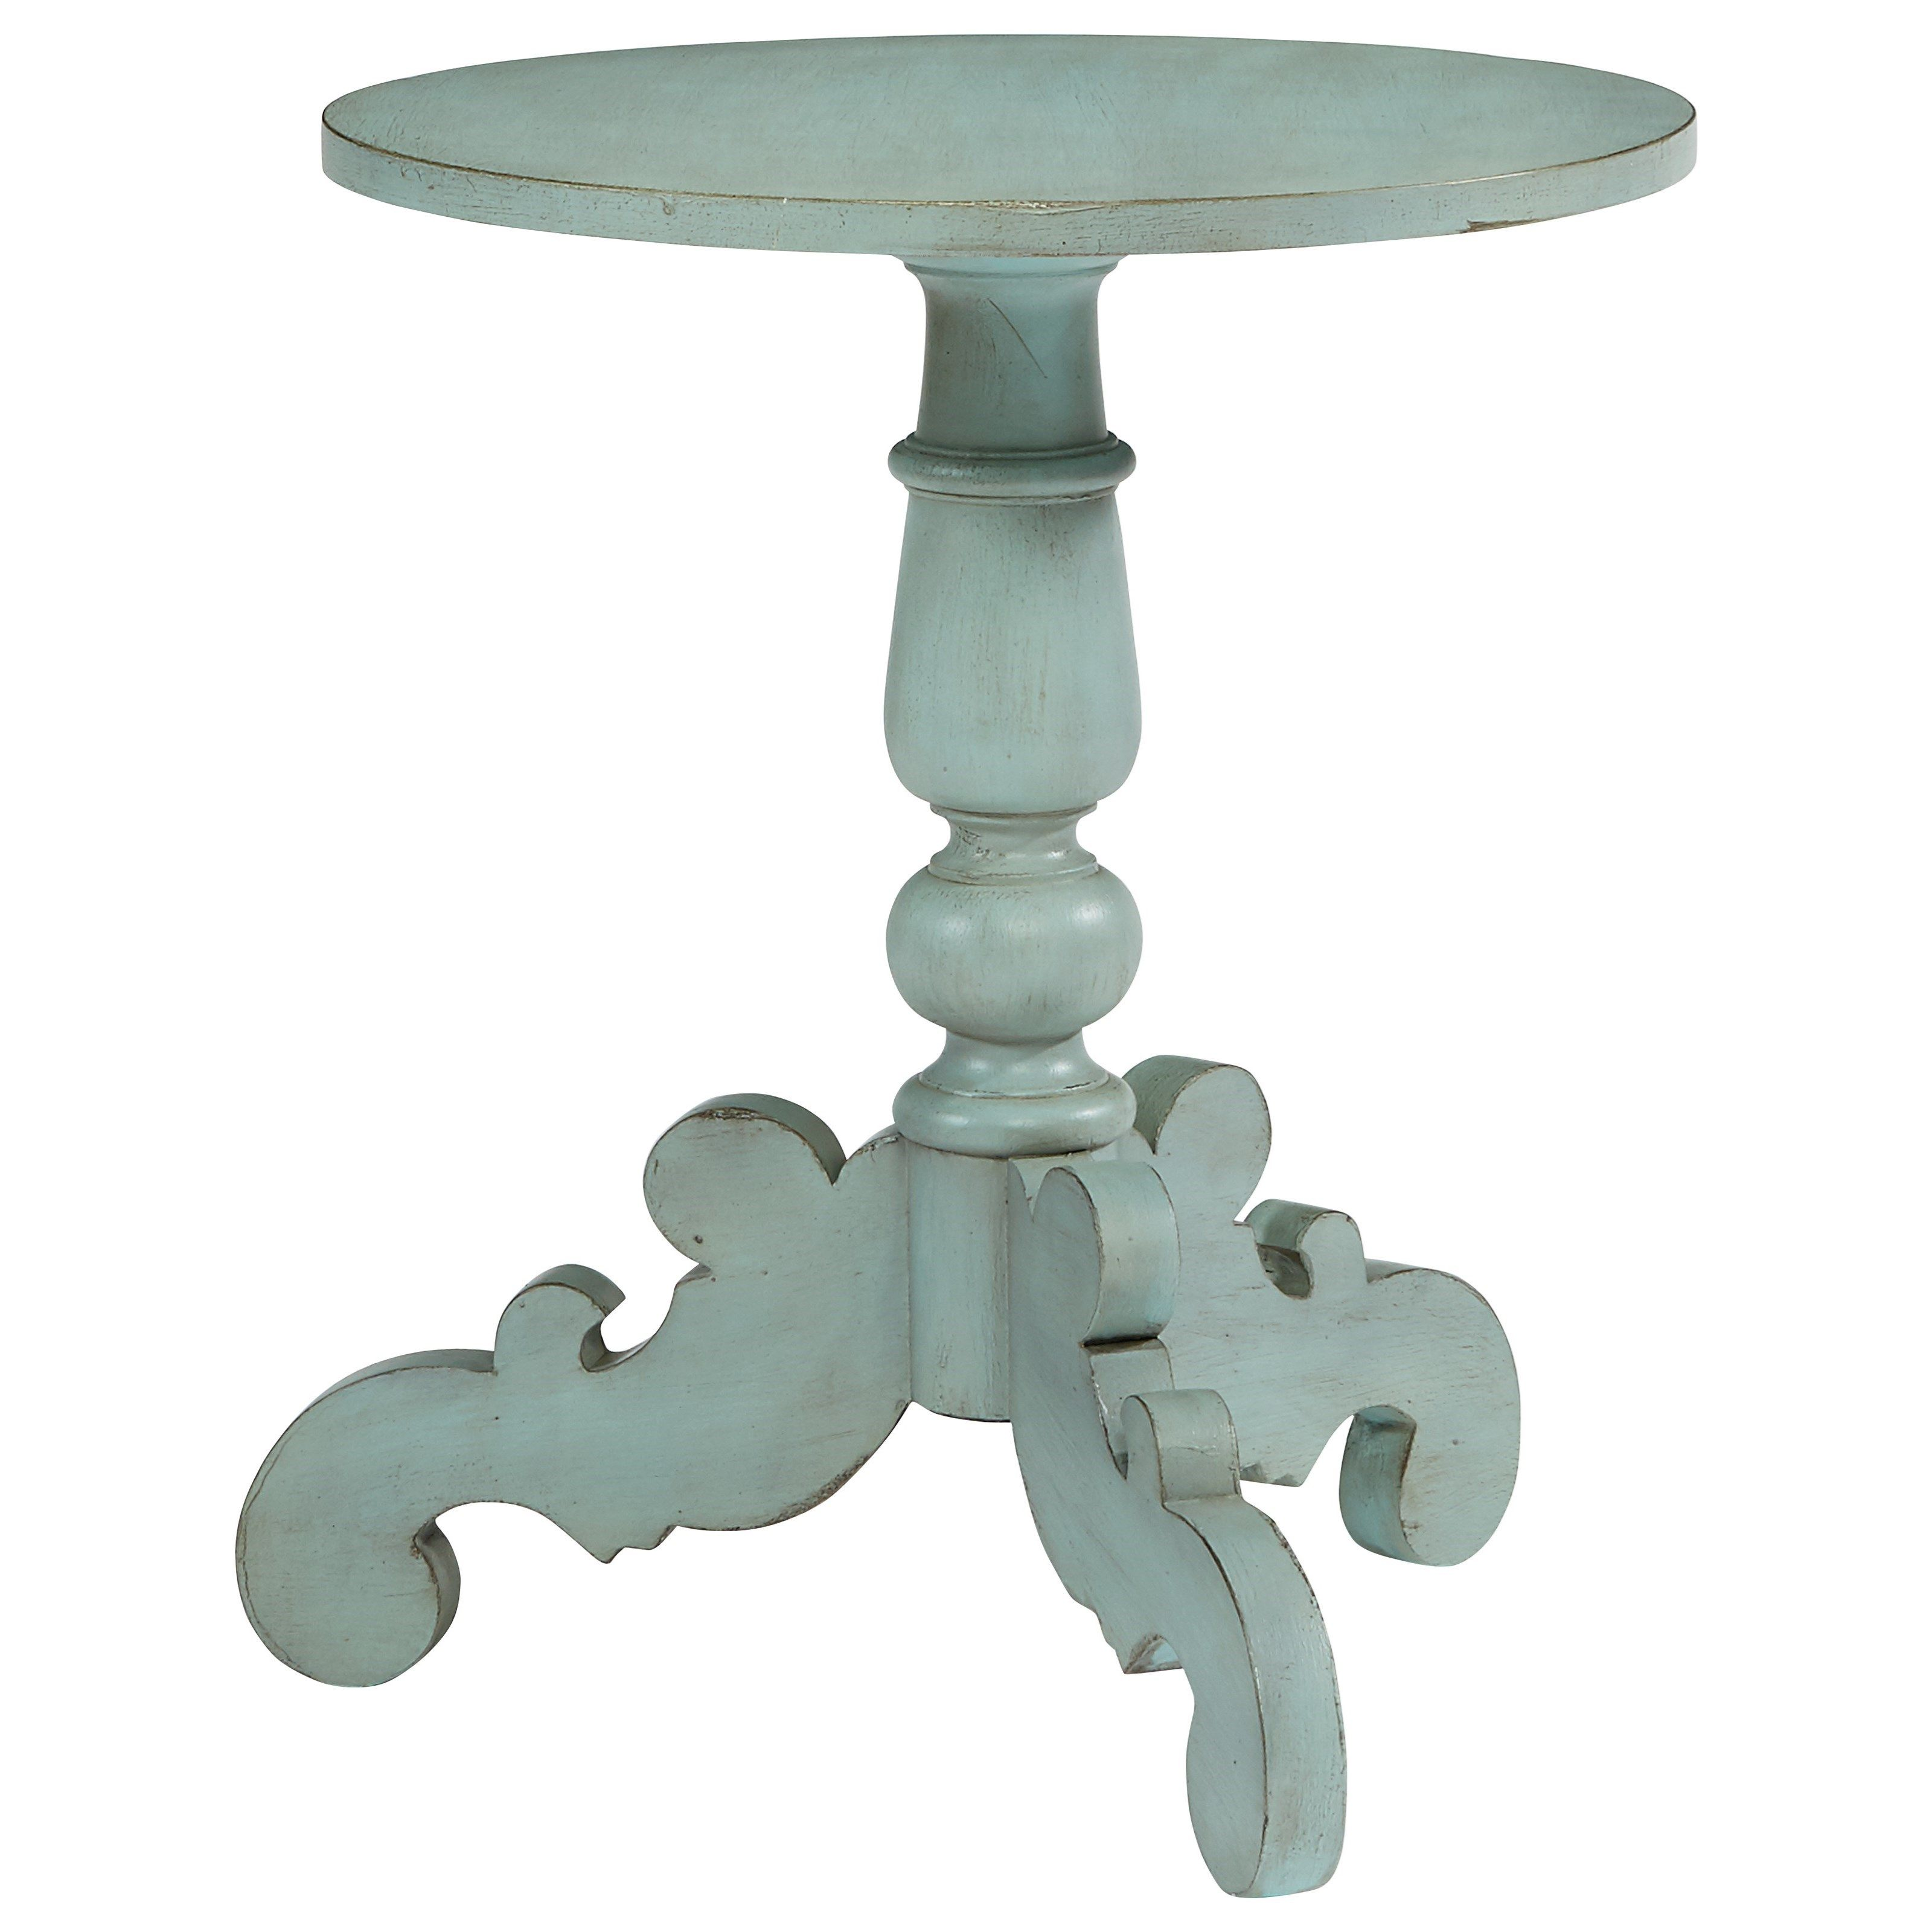 French Inspired Tripod Hall Table By Magnolia Home By Joanna Gaines At Darvin Furniture Magnolia Homes French Country Decorating Hall Table [ 3200 x 3200 Pixel ]